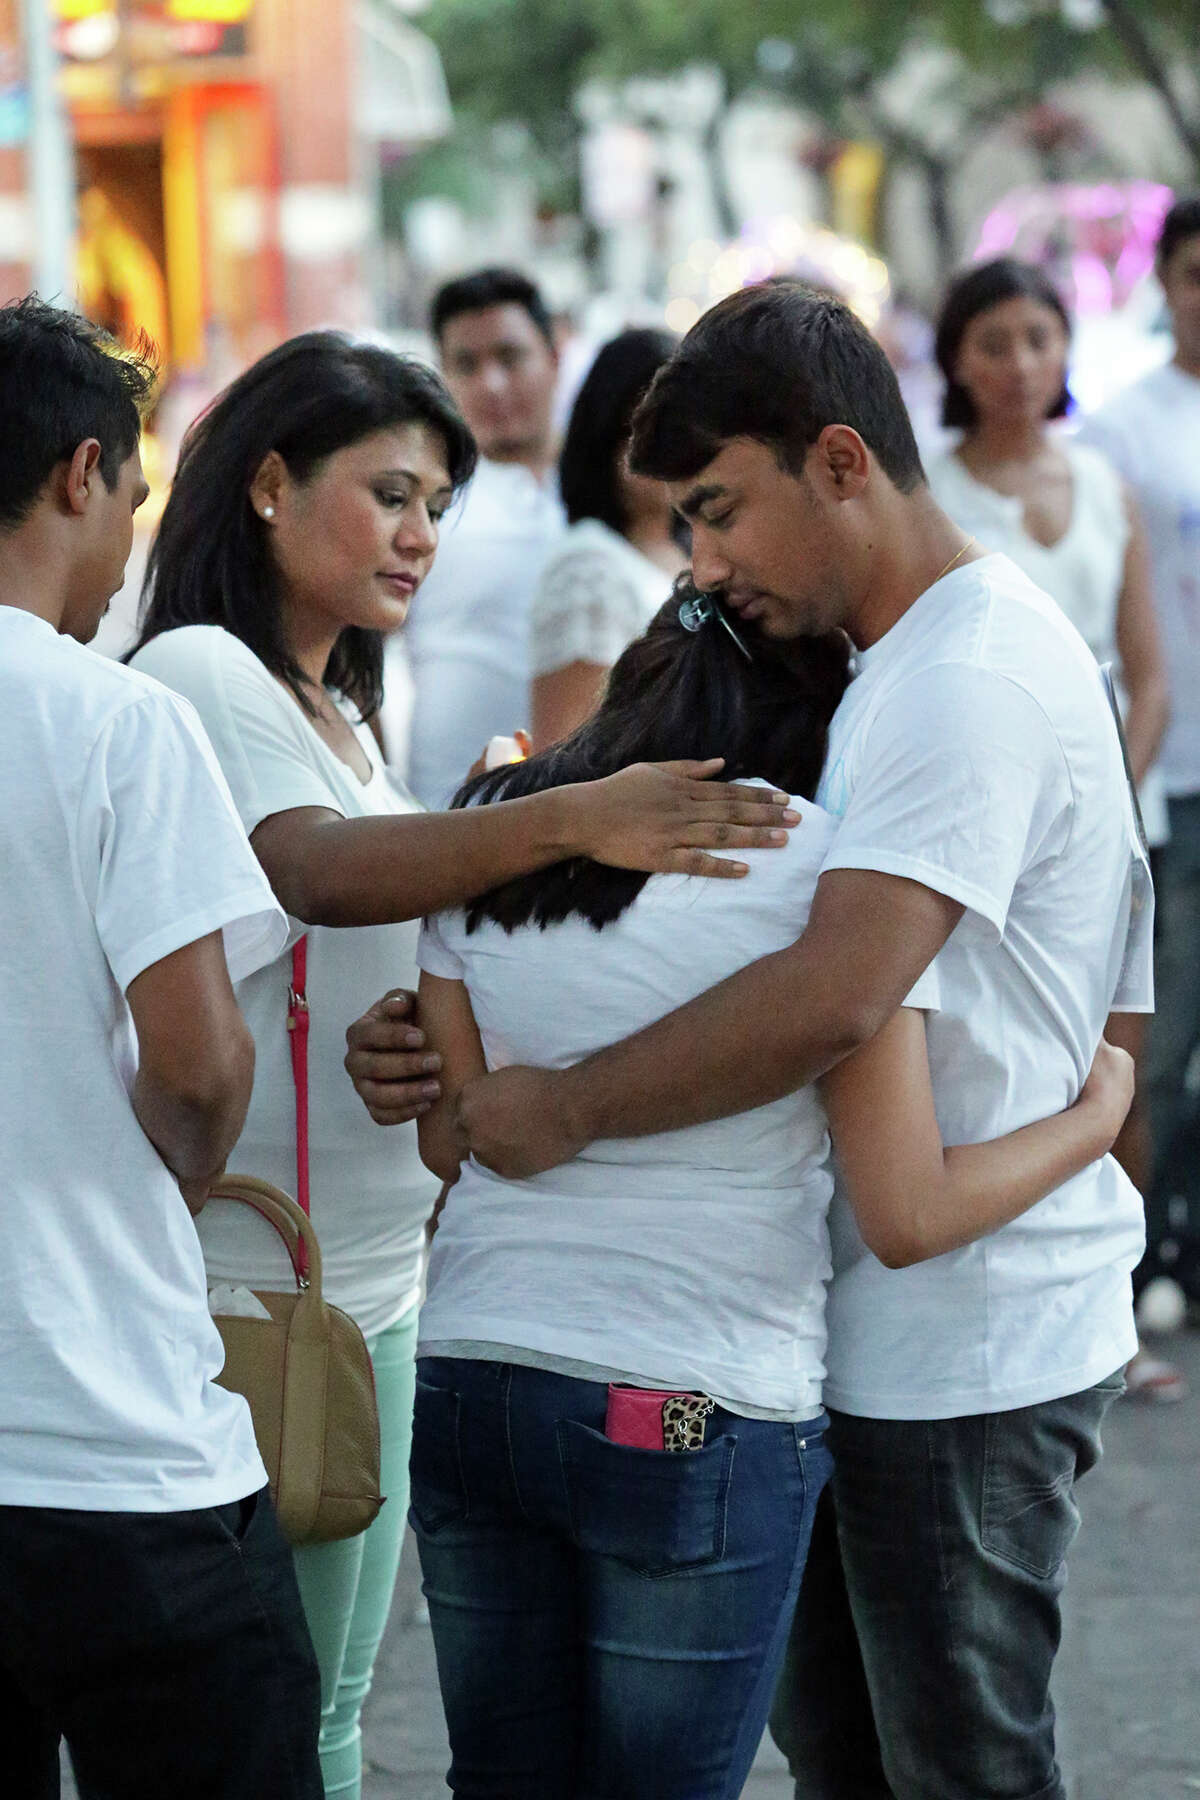 Sweta Sthapit, who lost her mother who was killed at home while eating lunch, is comforted by friends after trying to speak to the gathering as the Nepalese community in San Antonio gathers at Alamo Plaza to hold a candlelight vigil for the country of Nepal and earthquake victims on May 2, 2015.